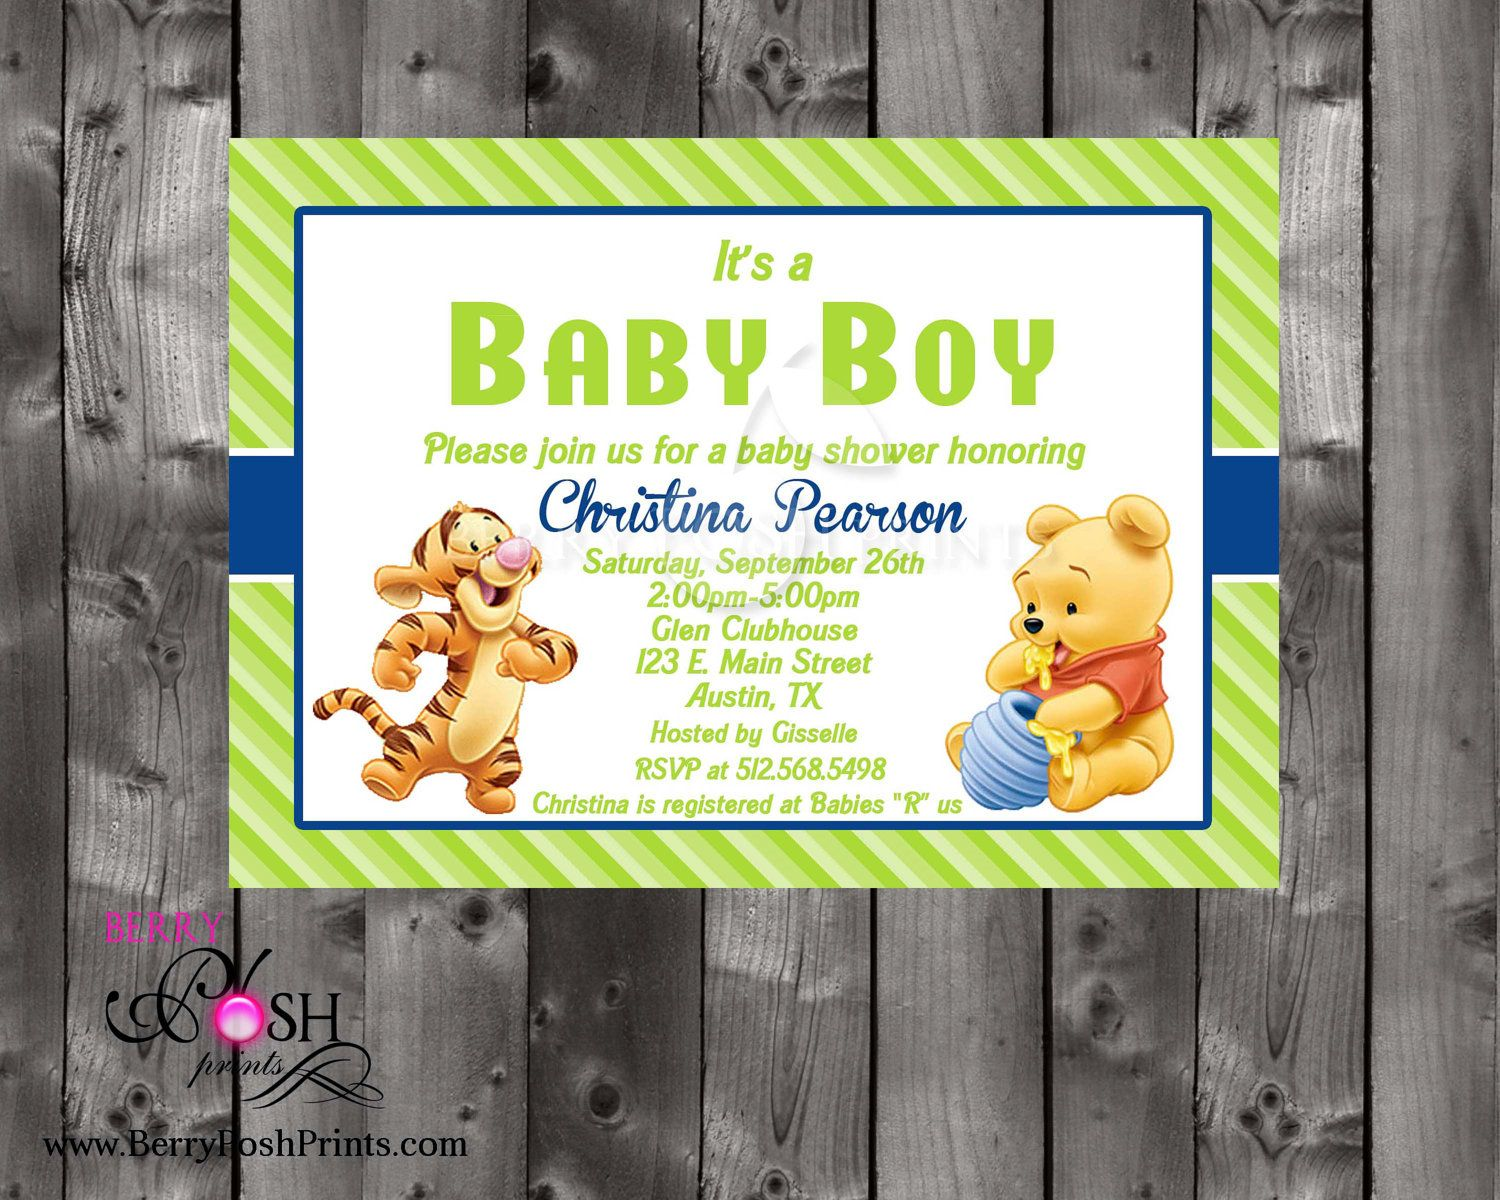 Winnie the Pooh Baby Shower Invitation by BerryPoshPrints on Etsy ...